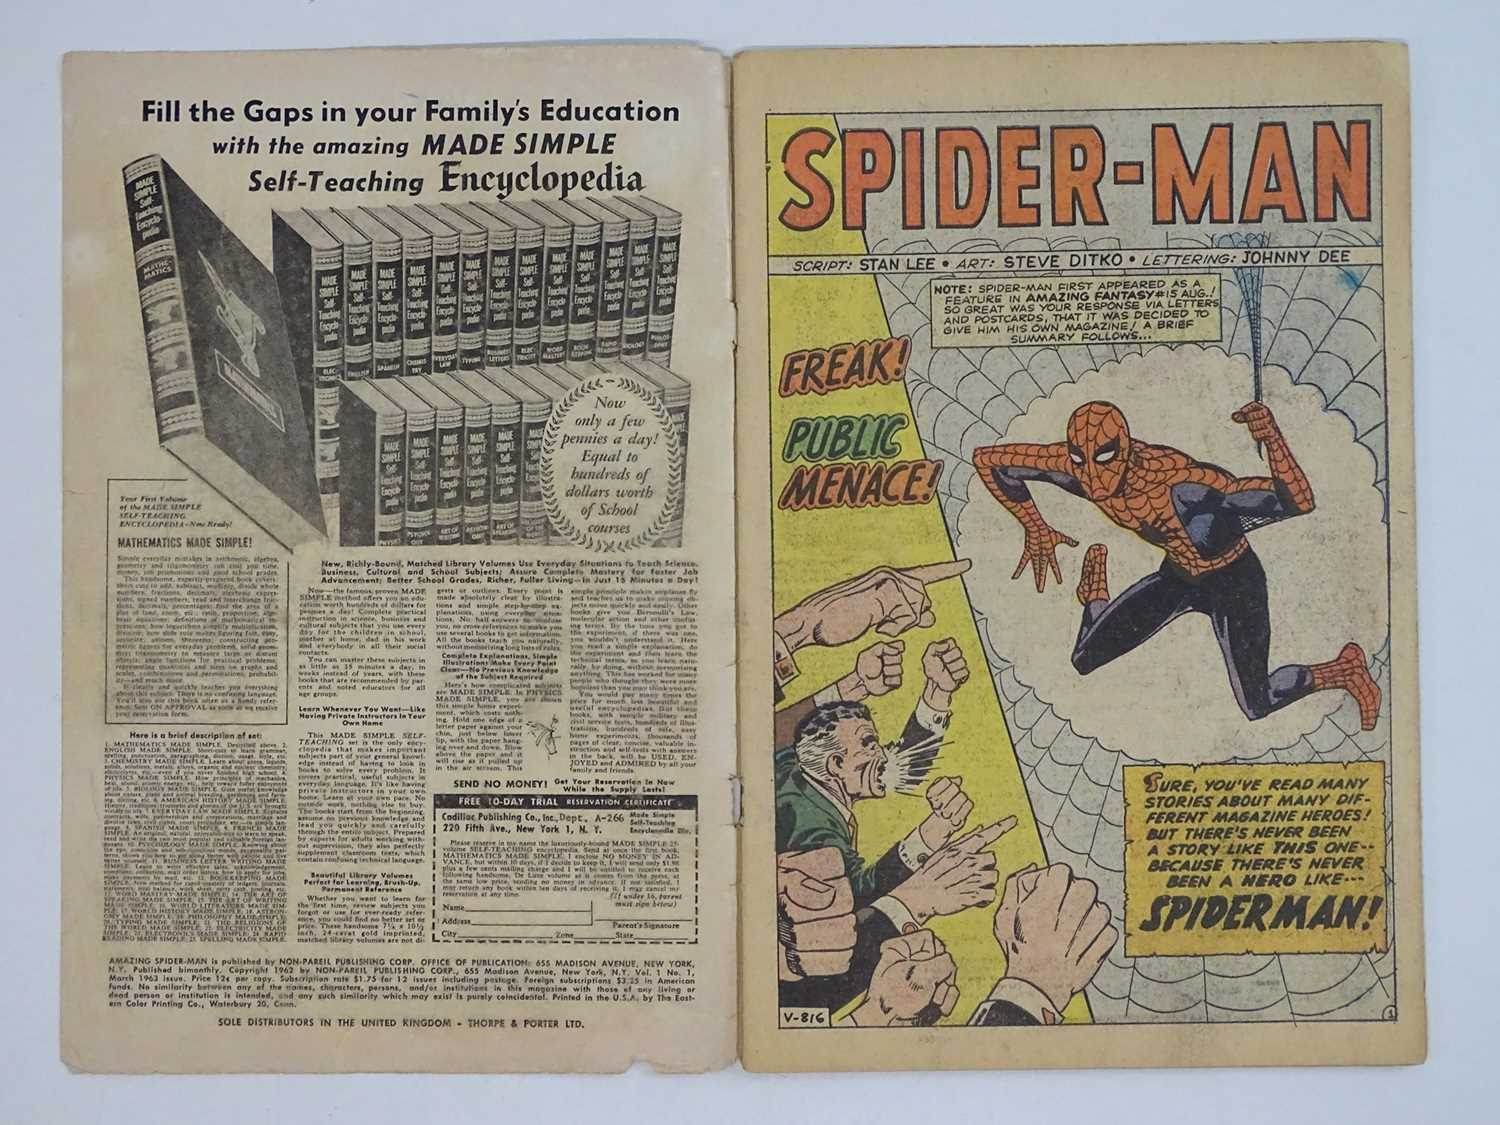 AMAZING SPIDER-MAN #1 - (1963 - MARVEL - UK Price Variant) - First appearance of Spider-Man un his - Image 7 of 27